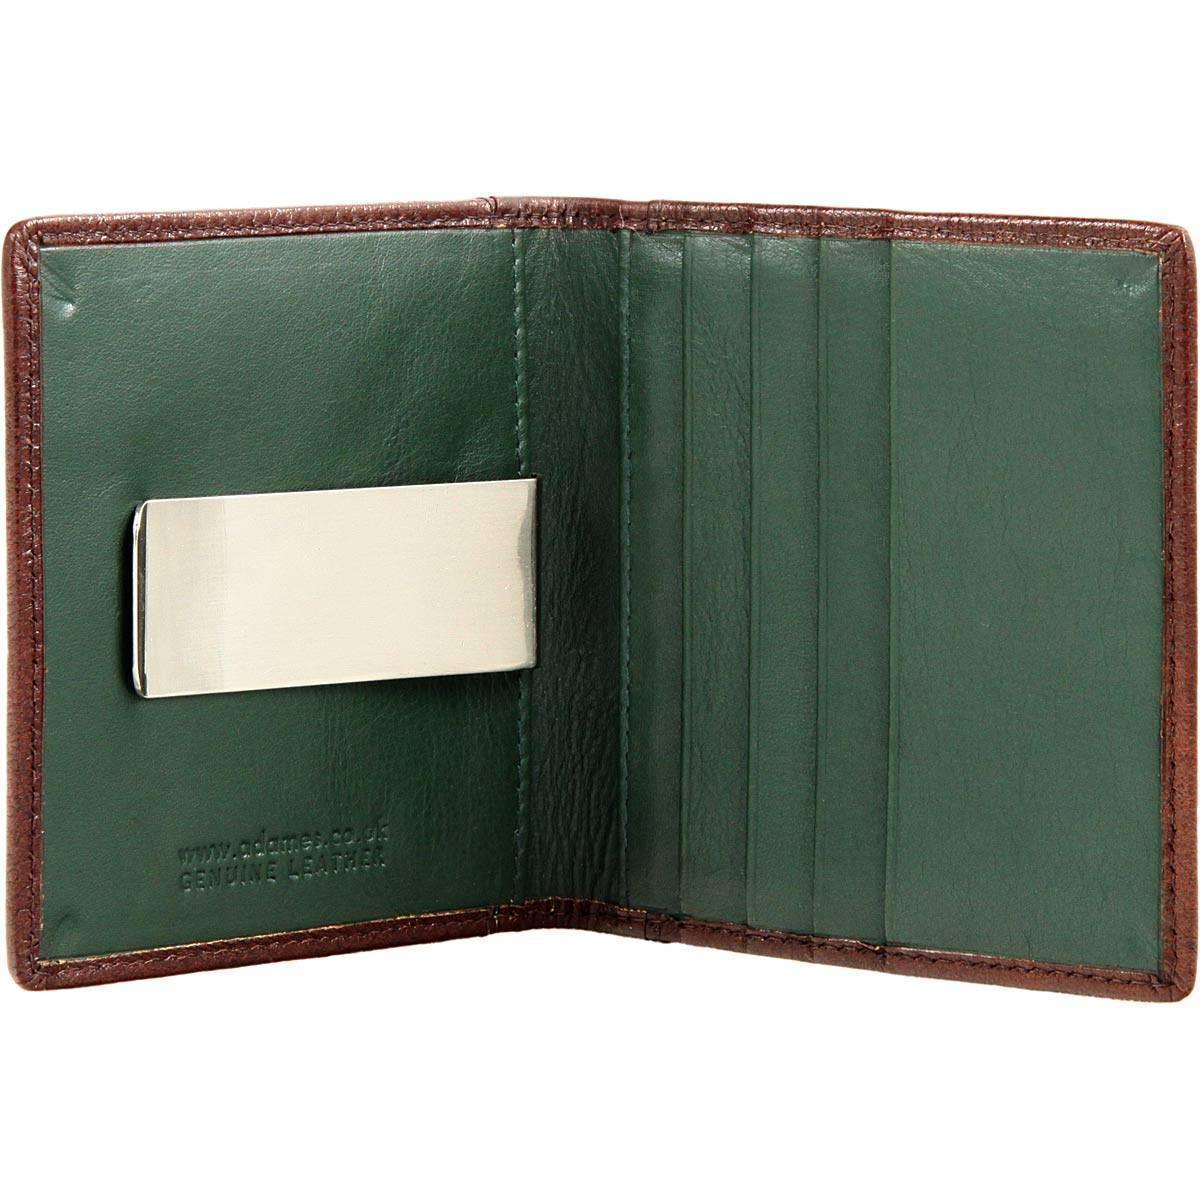 4335b085b736 Adames Money Clip Wallet with Oyster Card Holder: Brown/Green - adames